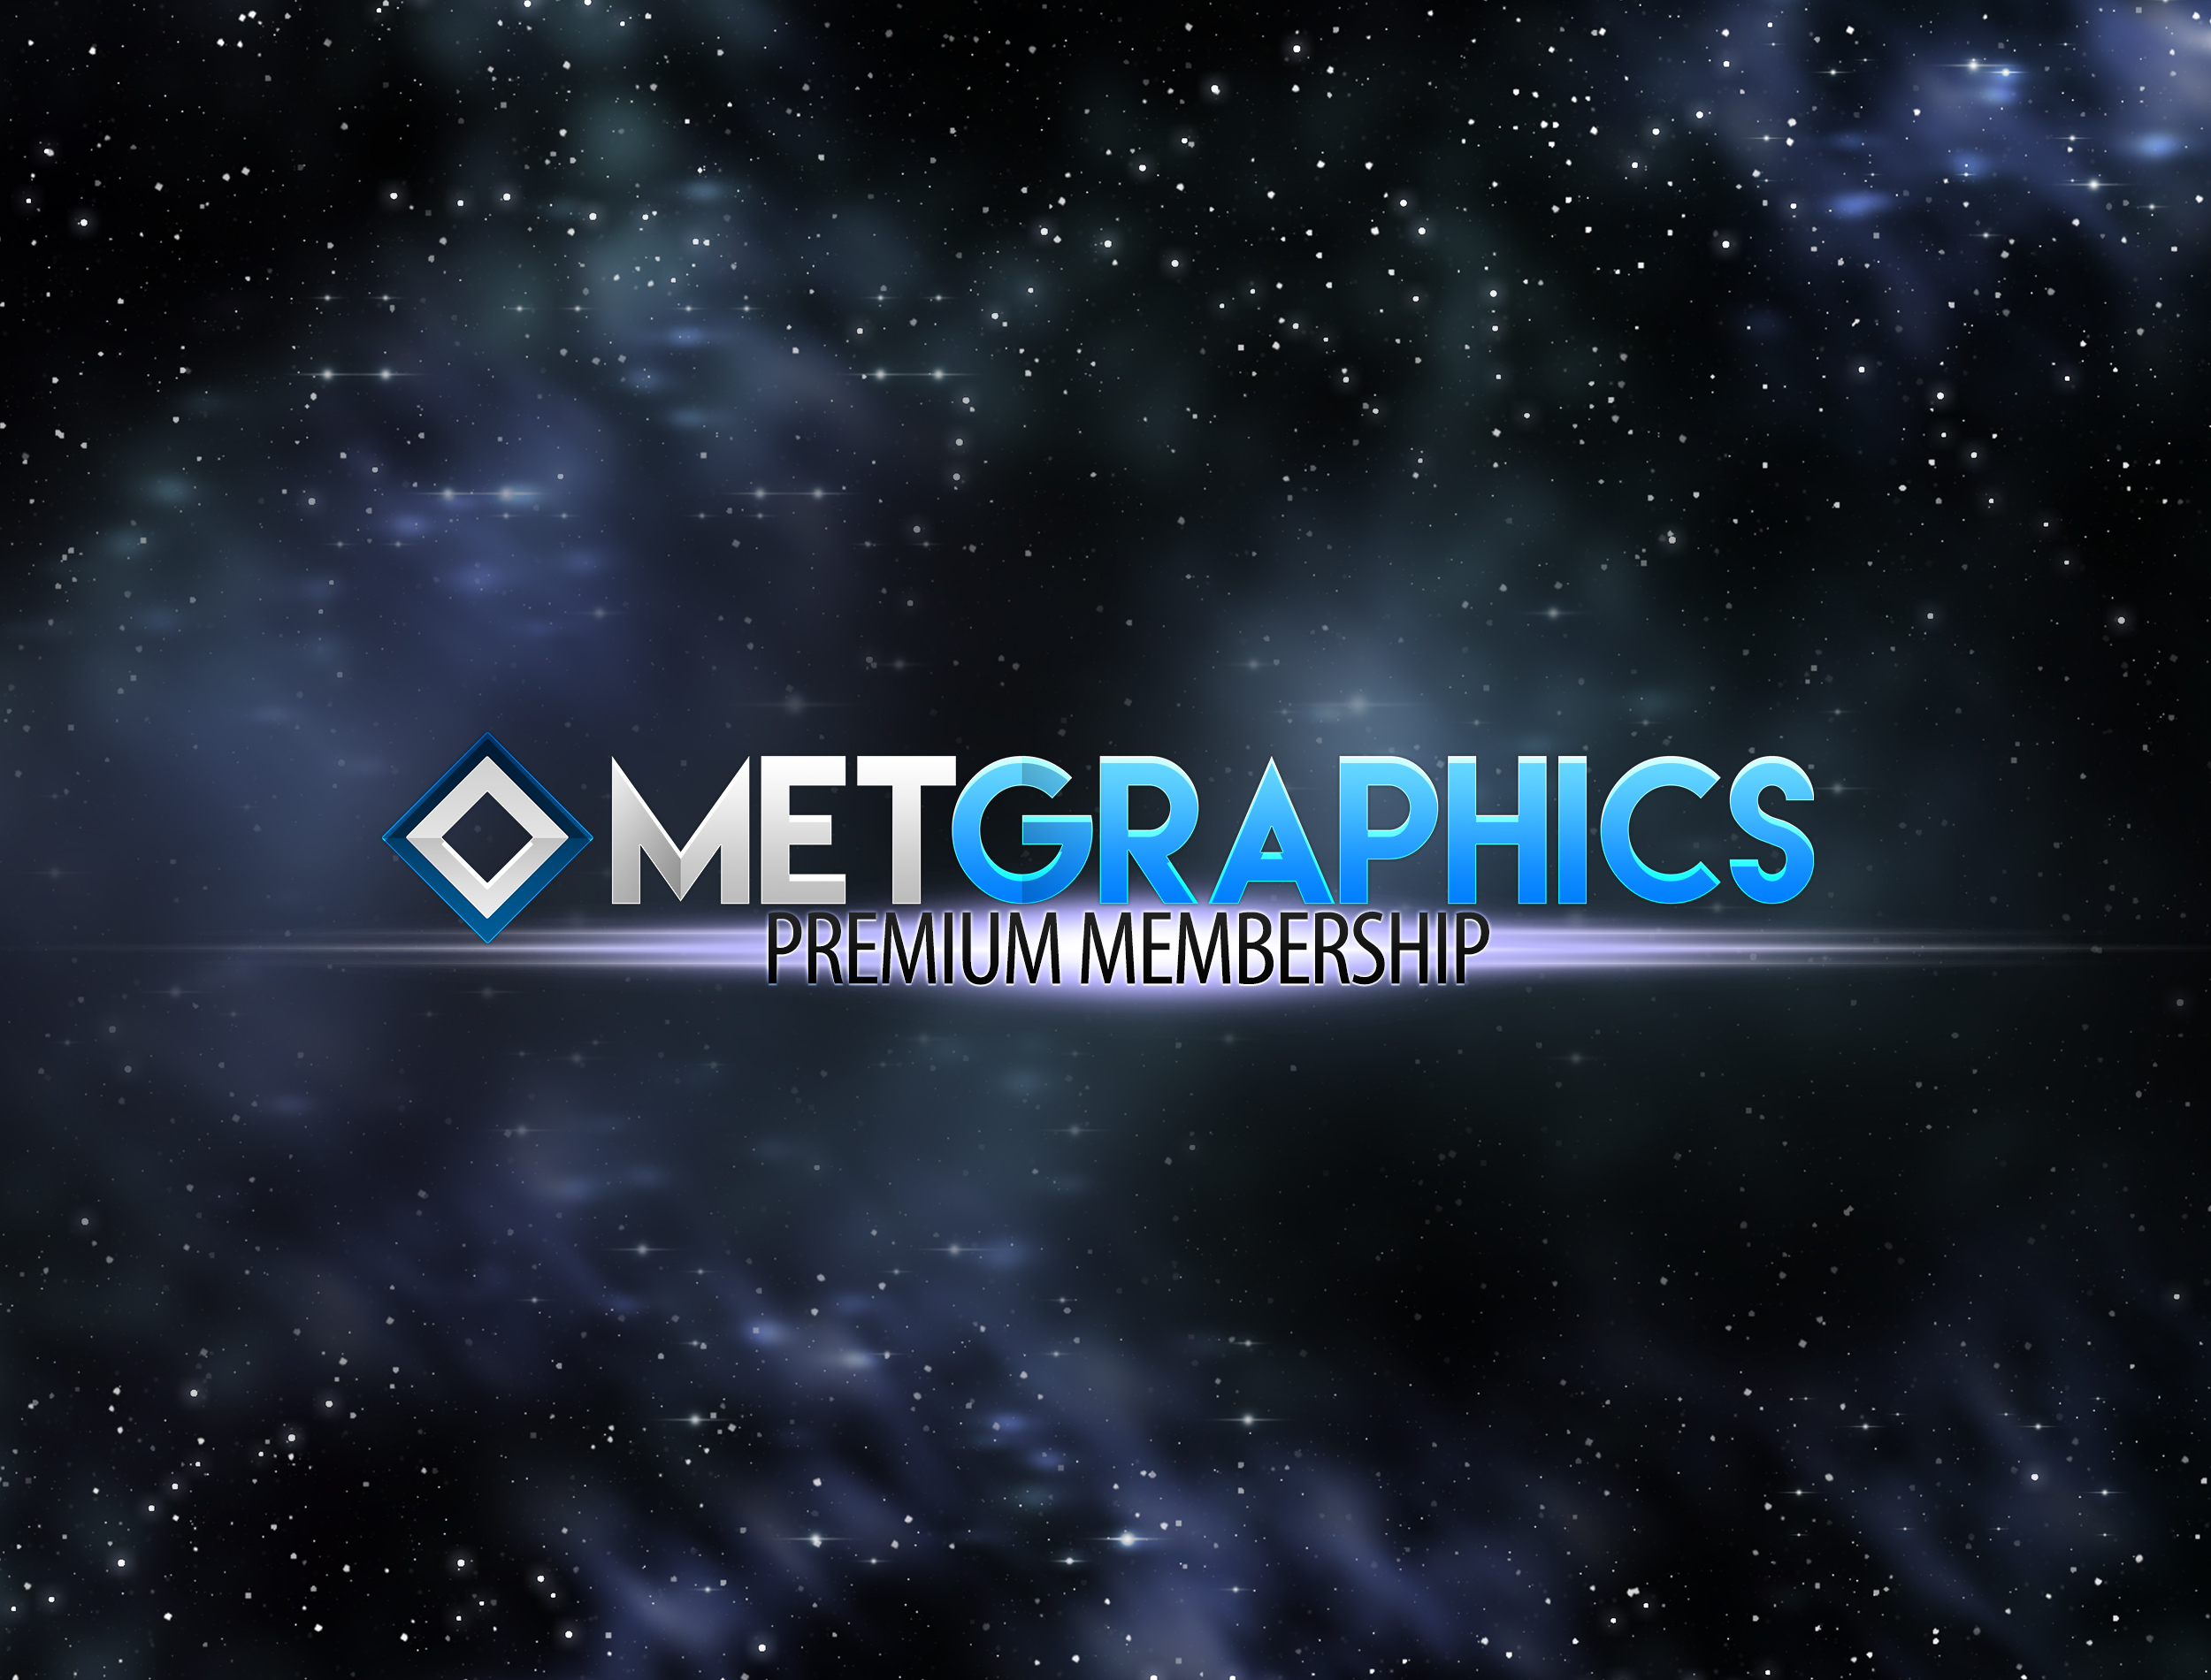 New: MetGraphics Premium Membership